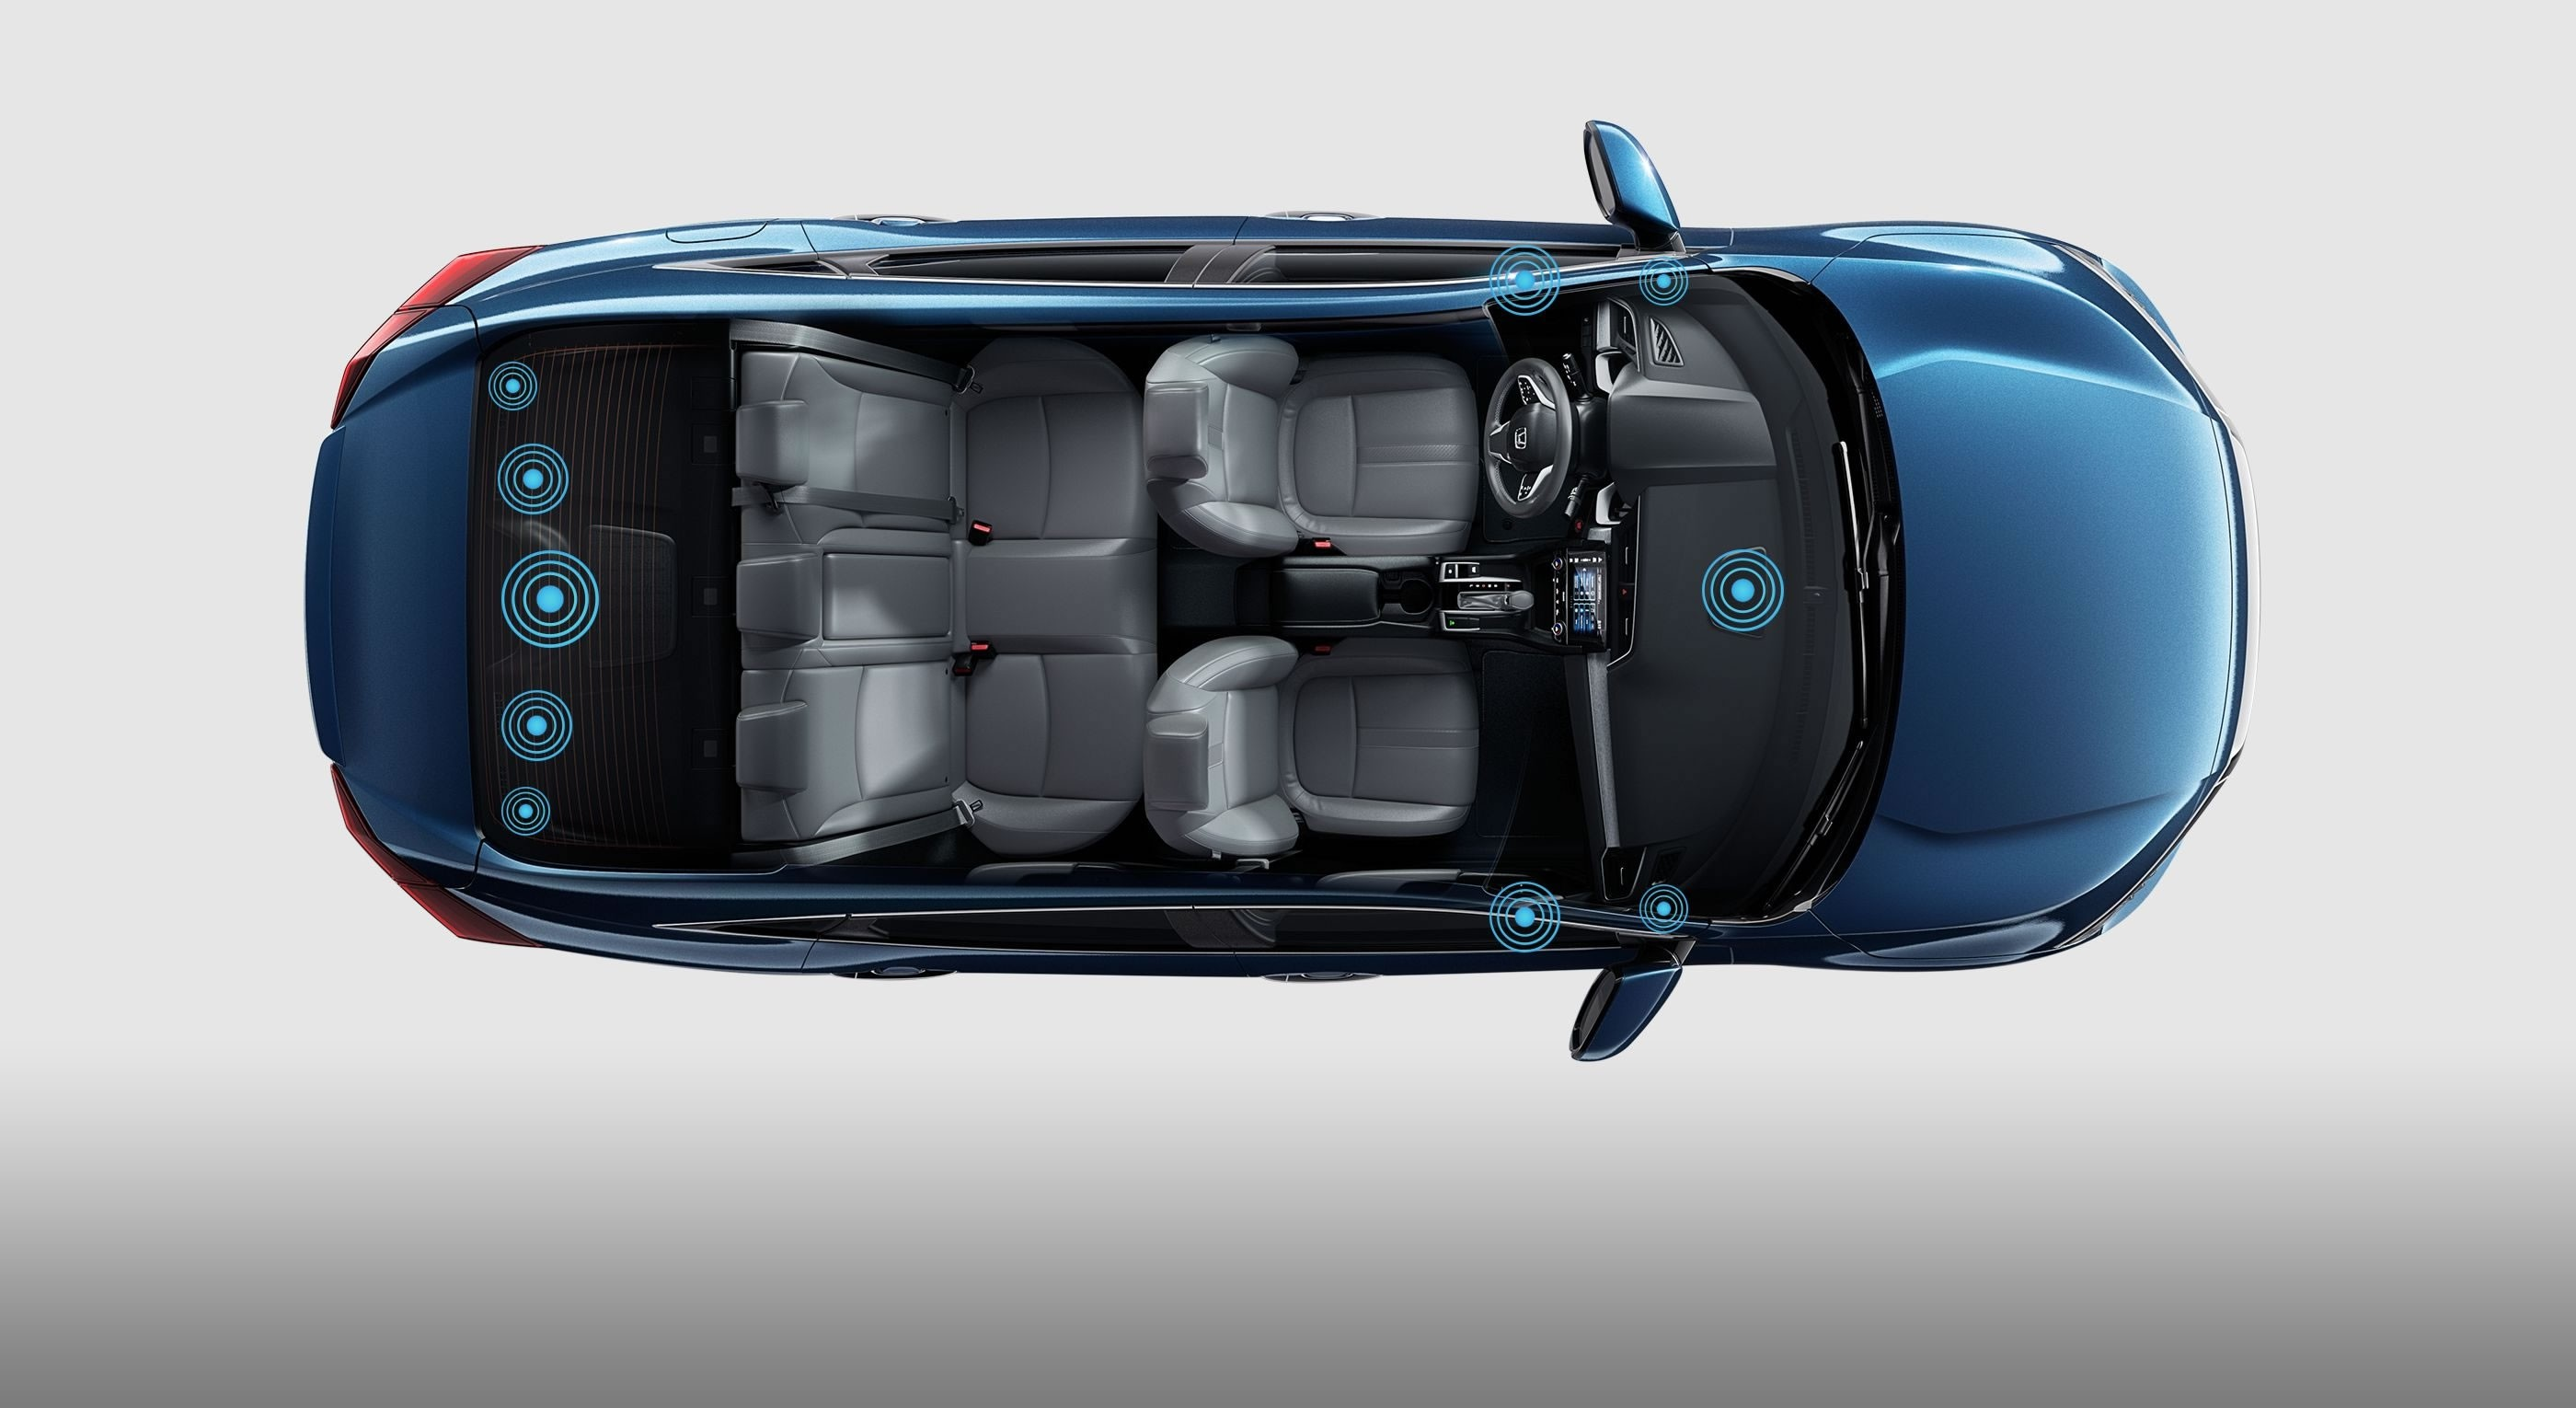 Top View of the 2017 Honda Civic Highlighting the Location of Sensors